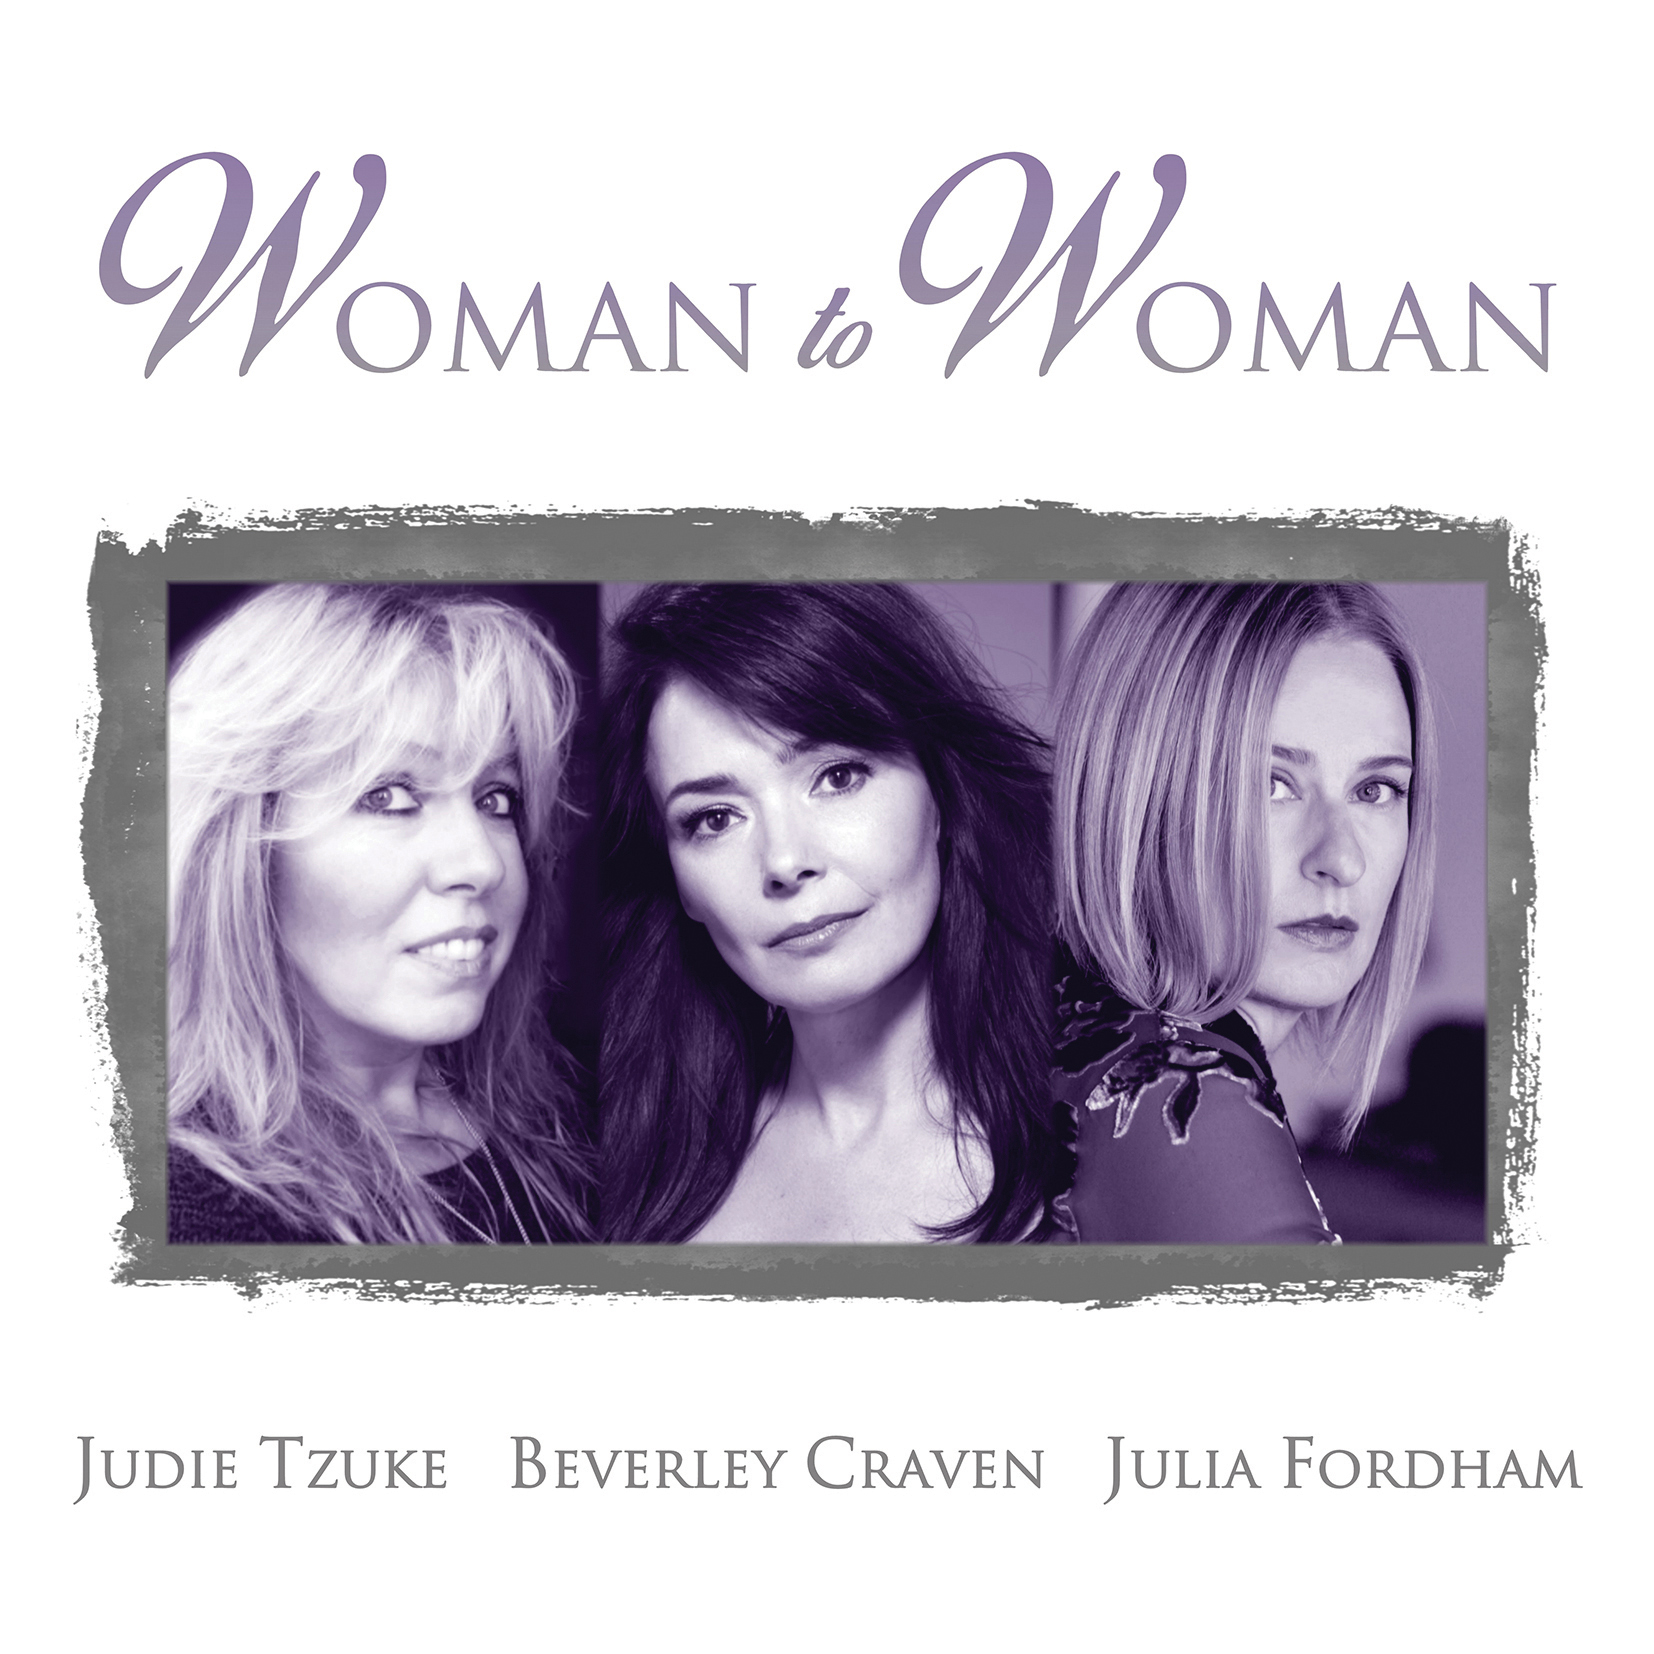 Woman to Woman featuring Judie Tzuke, Beverley Craven, Julia Fordham at Vicar Street